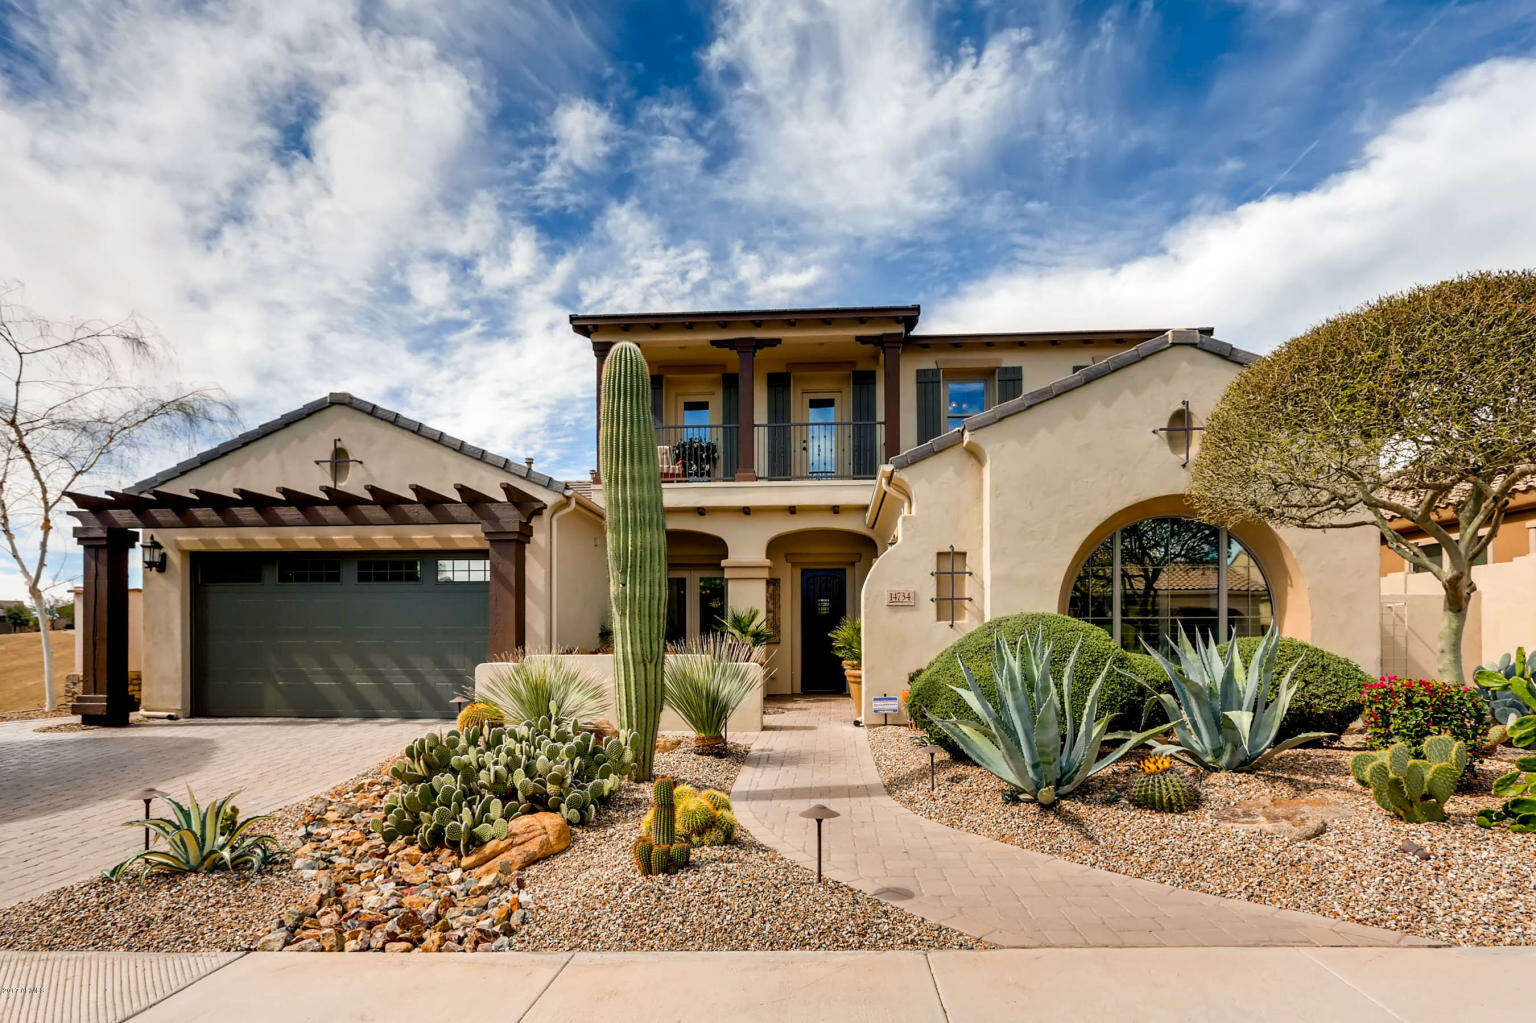 Single Family for Sale at 14734 S 182nd Dr Goodyear, Arizona 85338 United States